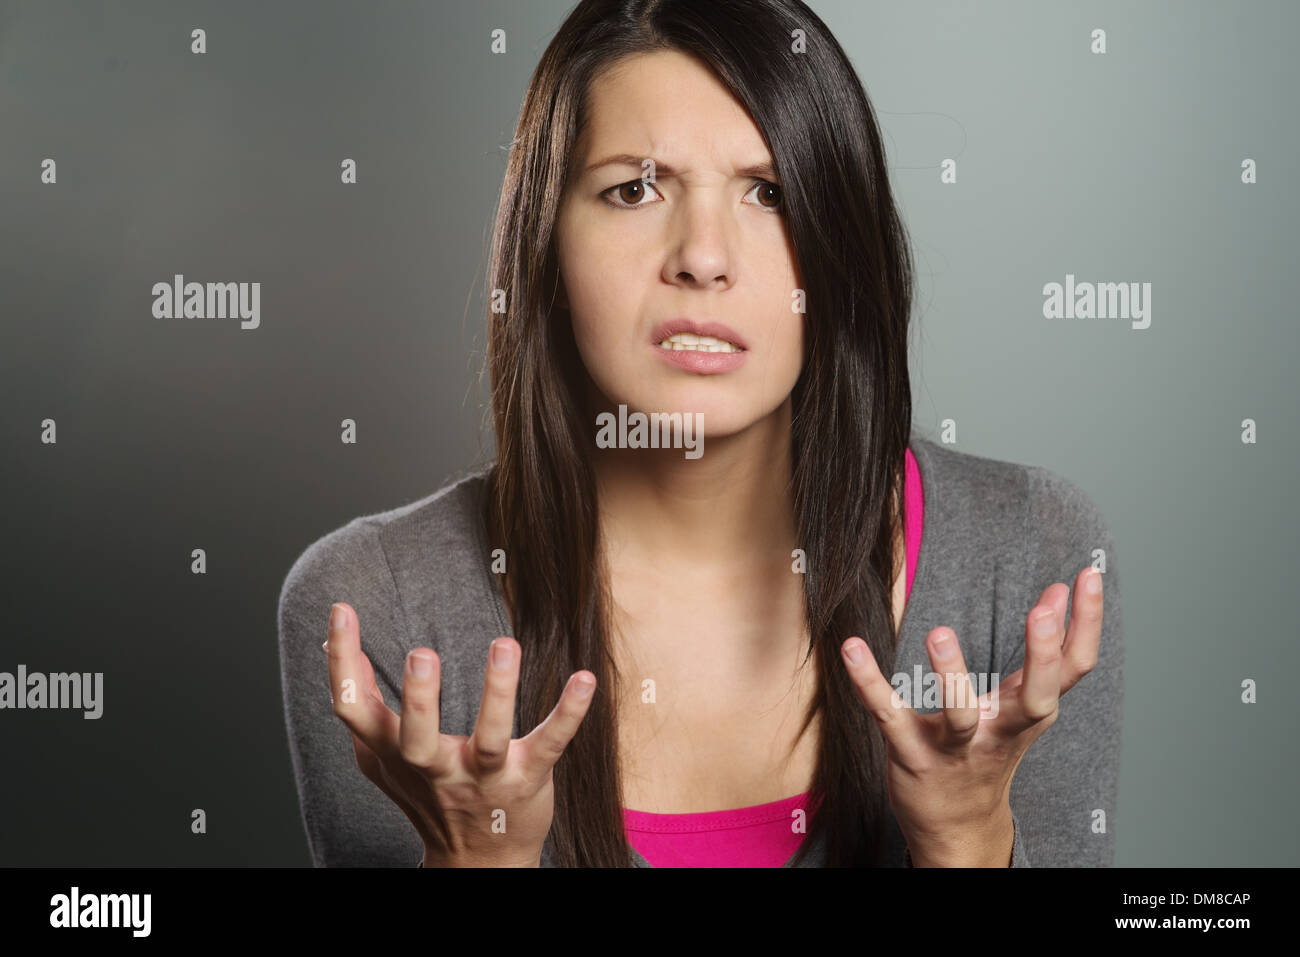 Young woman with a horrified expression Stock Photo